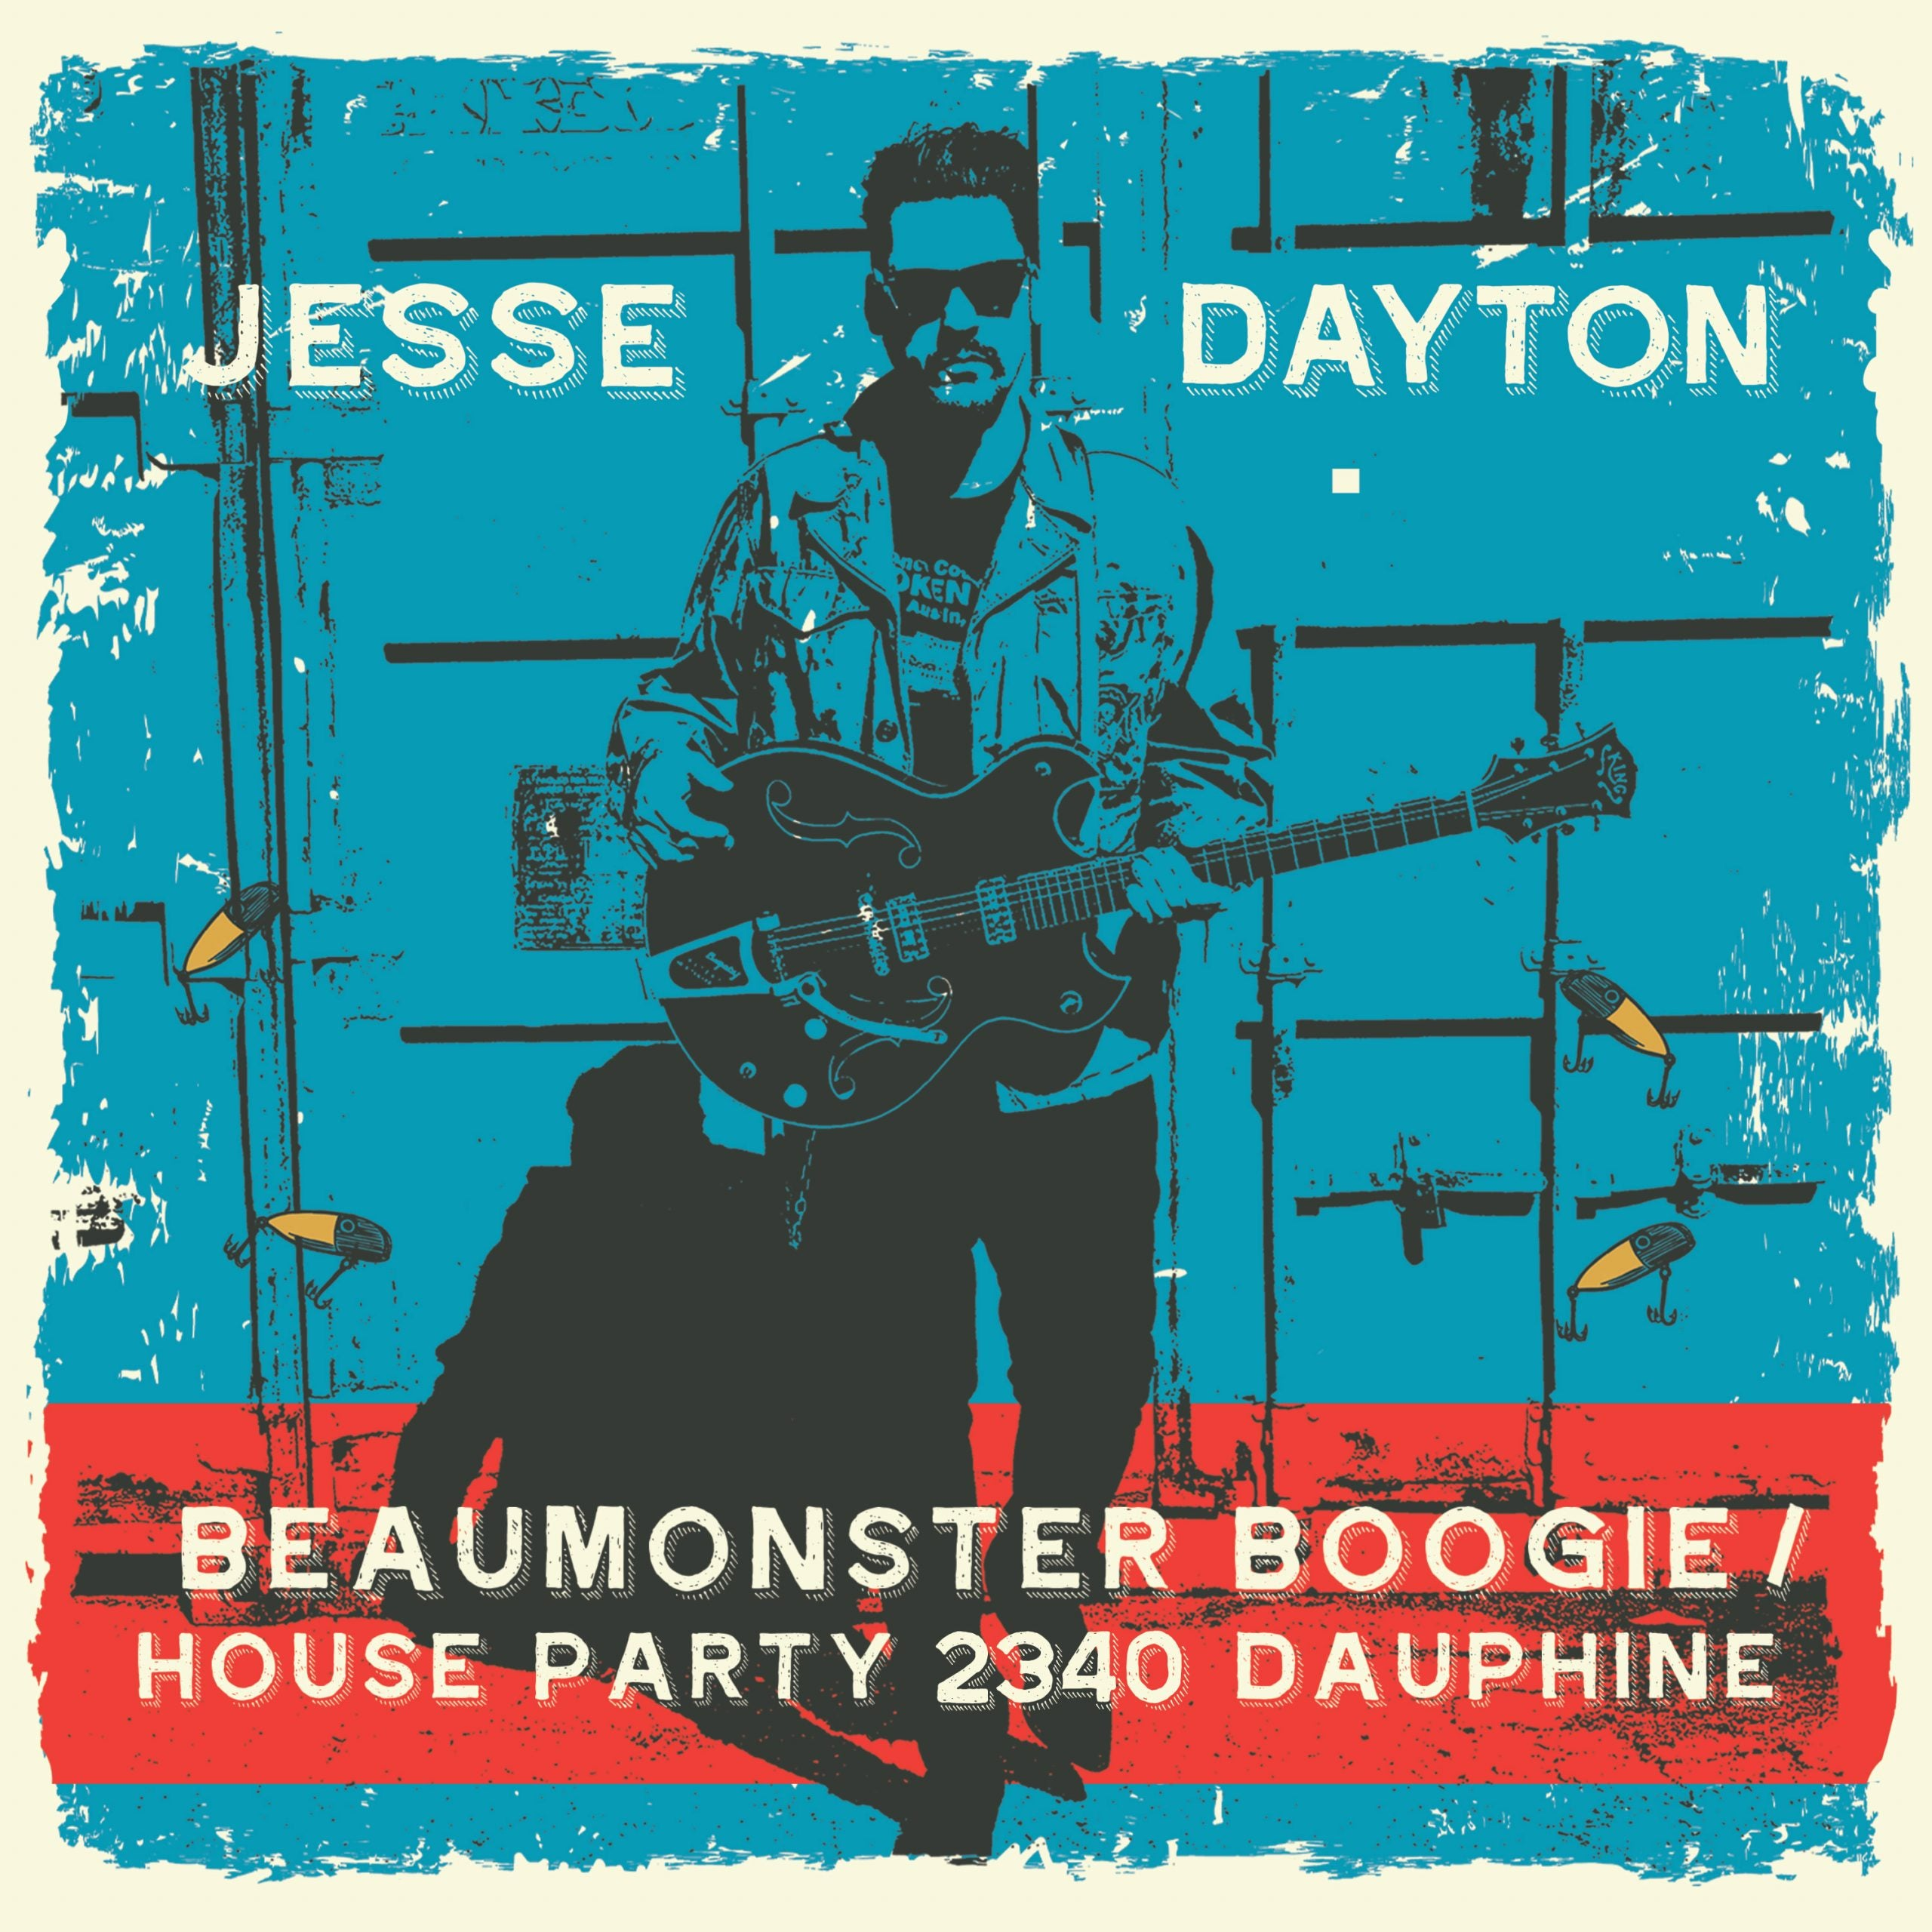 Jesse Dayton - Beaumonster Boogie / House Party 2340 Dauphine